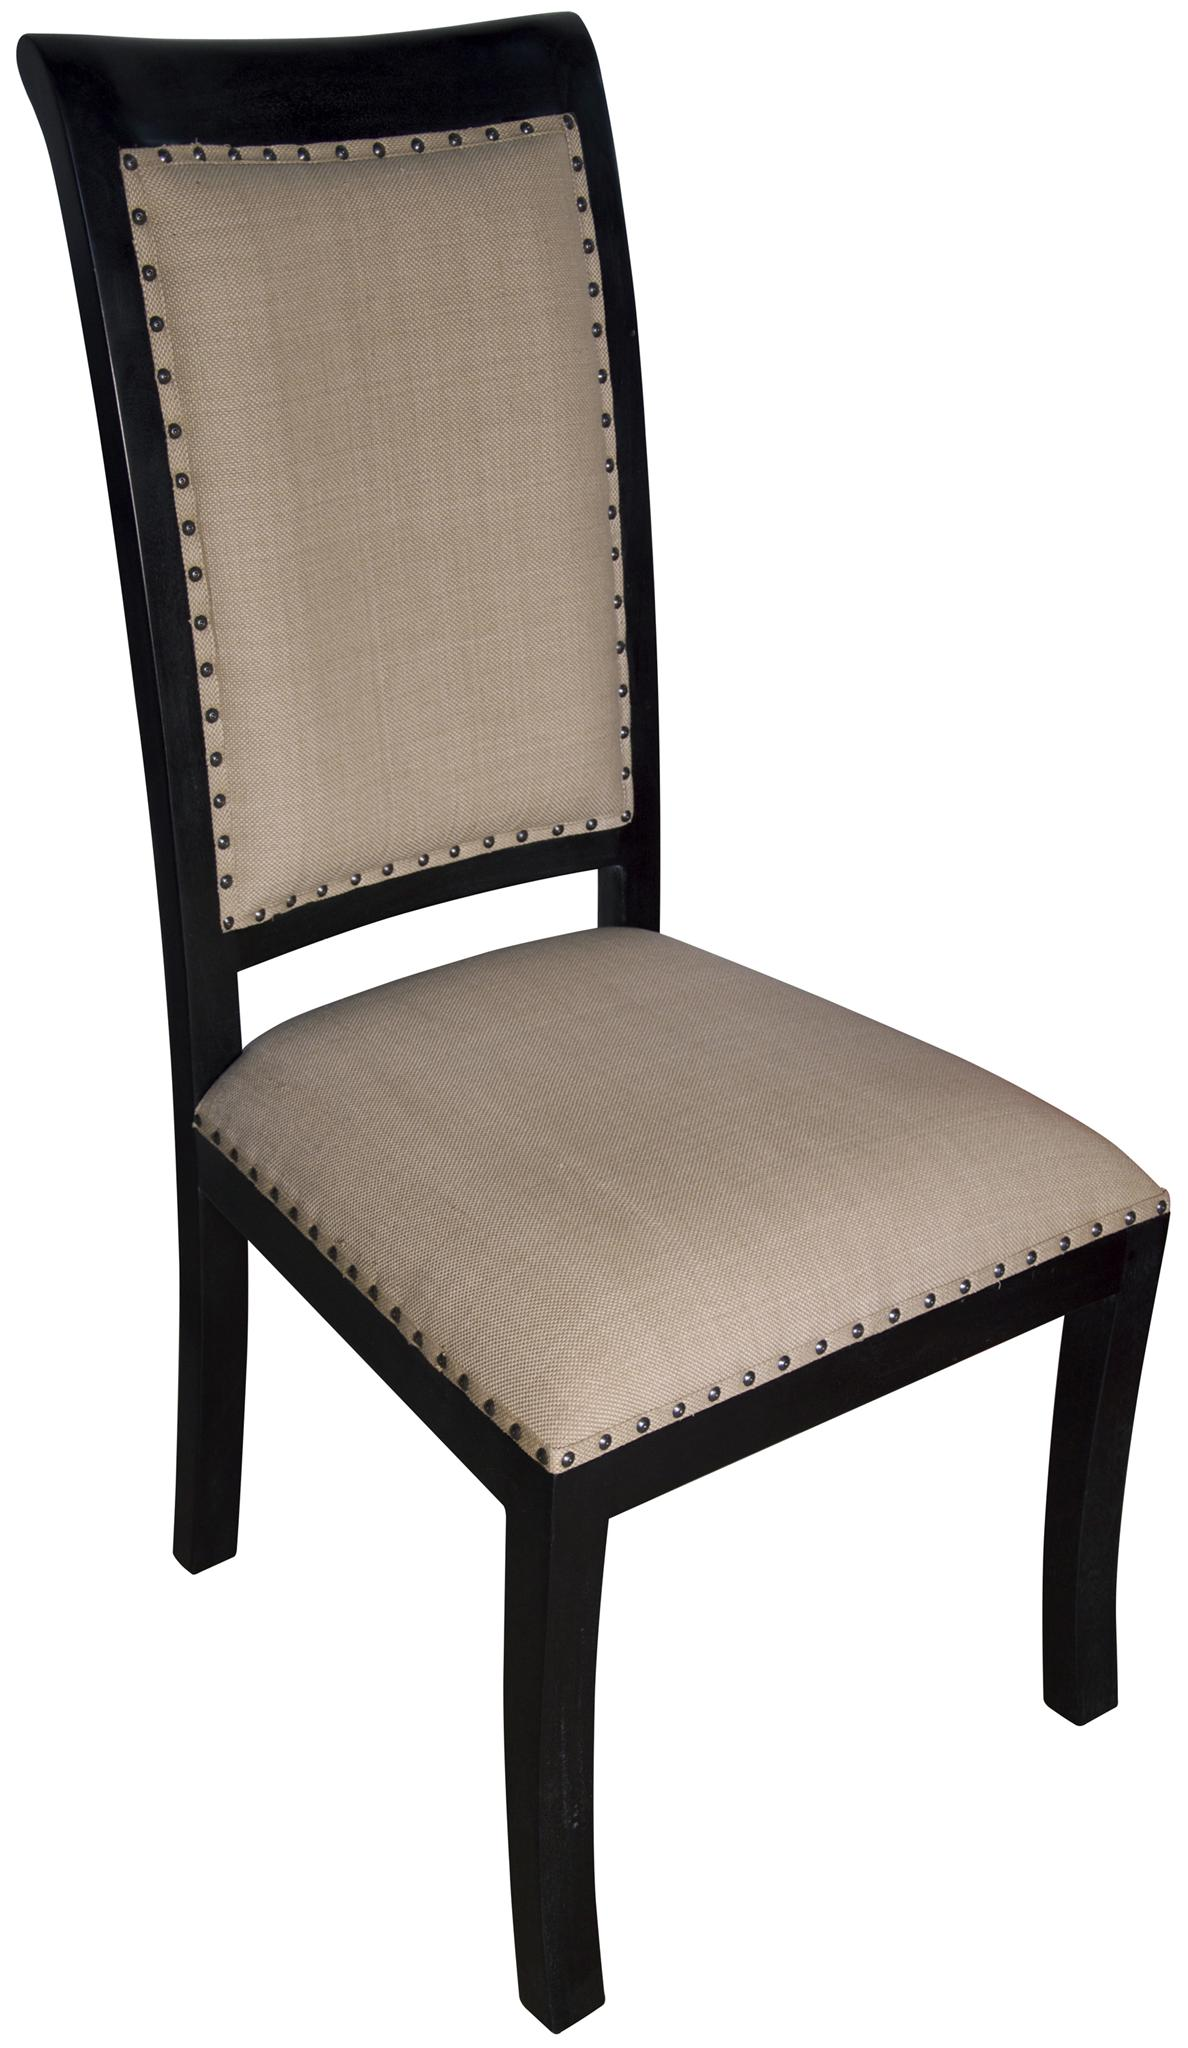 noir dining chairs xbox 360 gaming chair